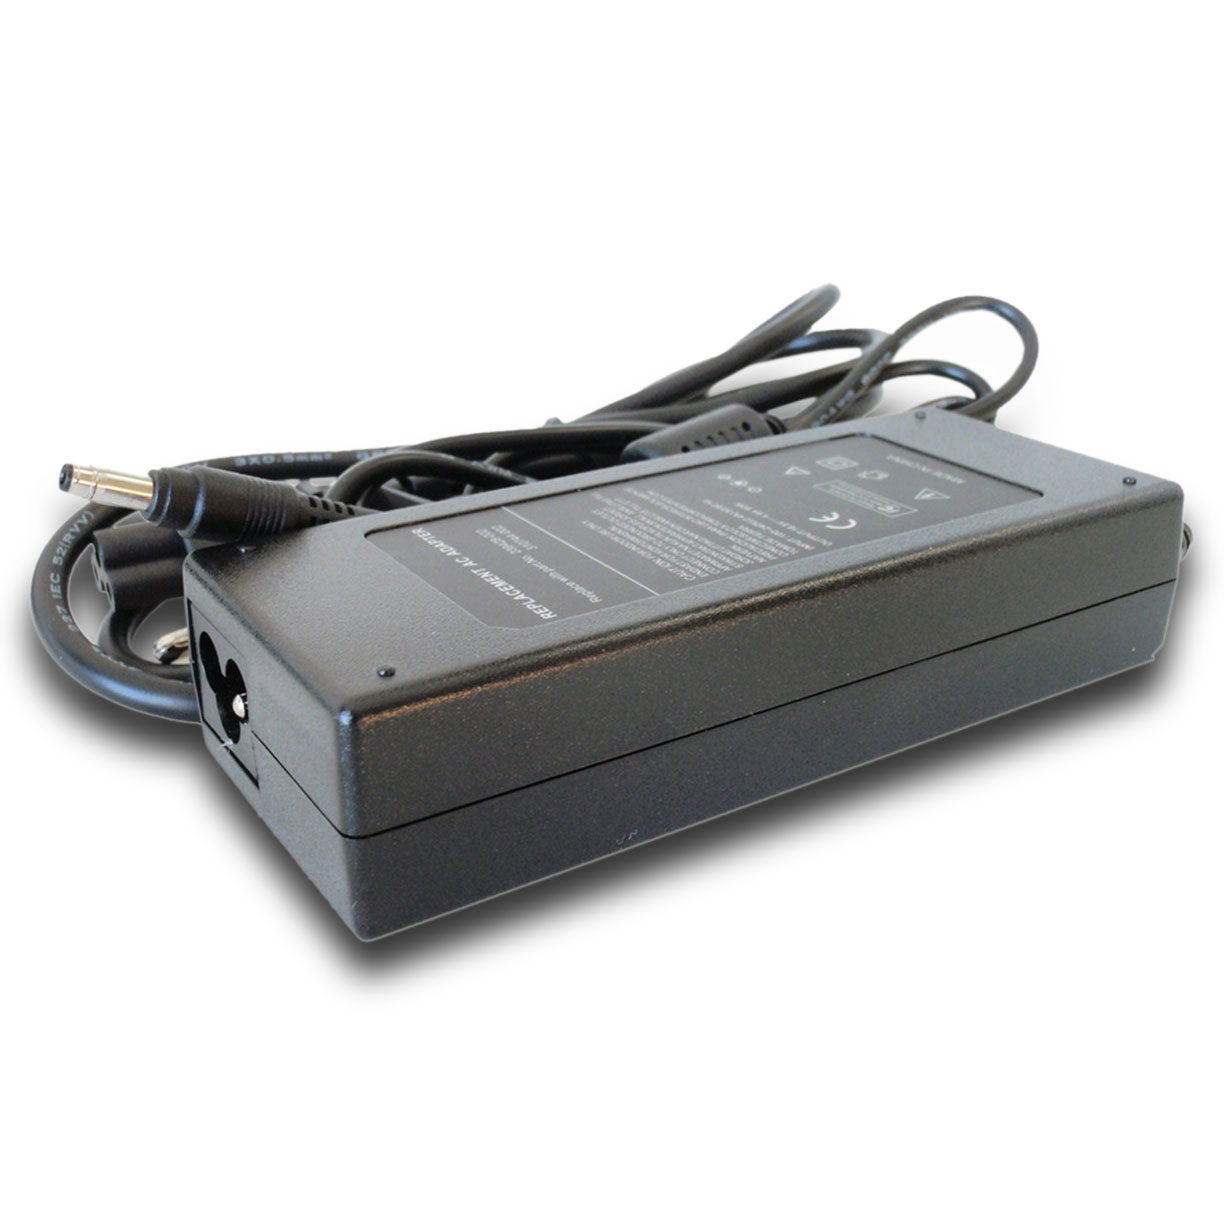 HP Pavilion dv2310us dv9429us dv9535nr dv9730nr dv9910us AC Power Adapter Battery Charger Power Supply as Replacement Part at Sears.com